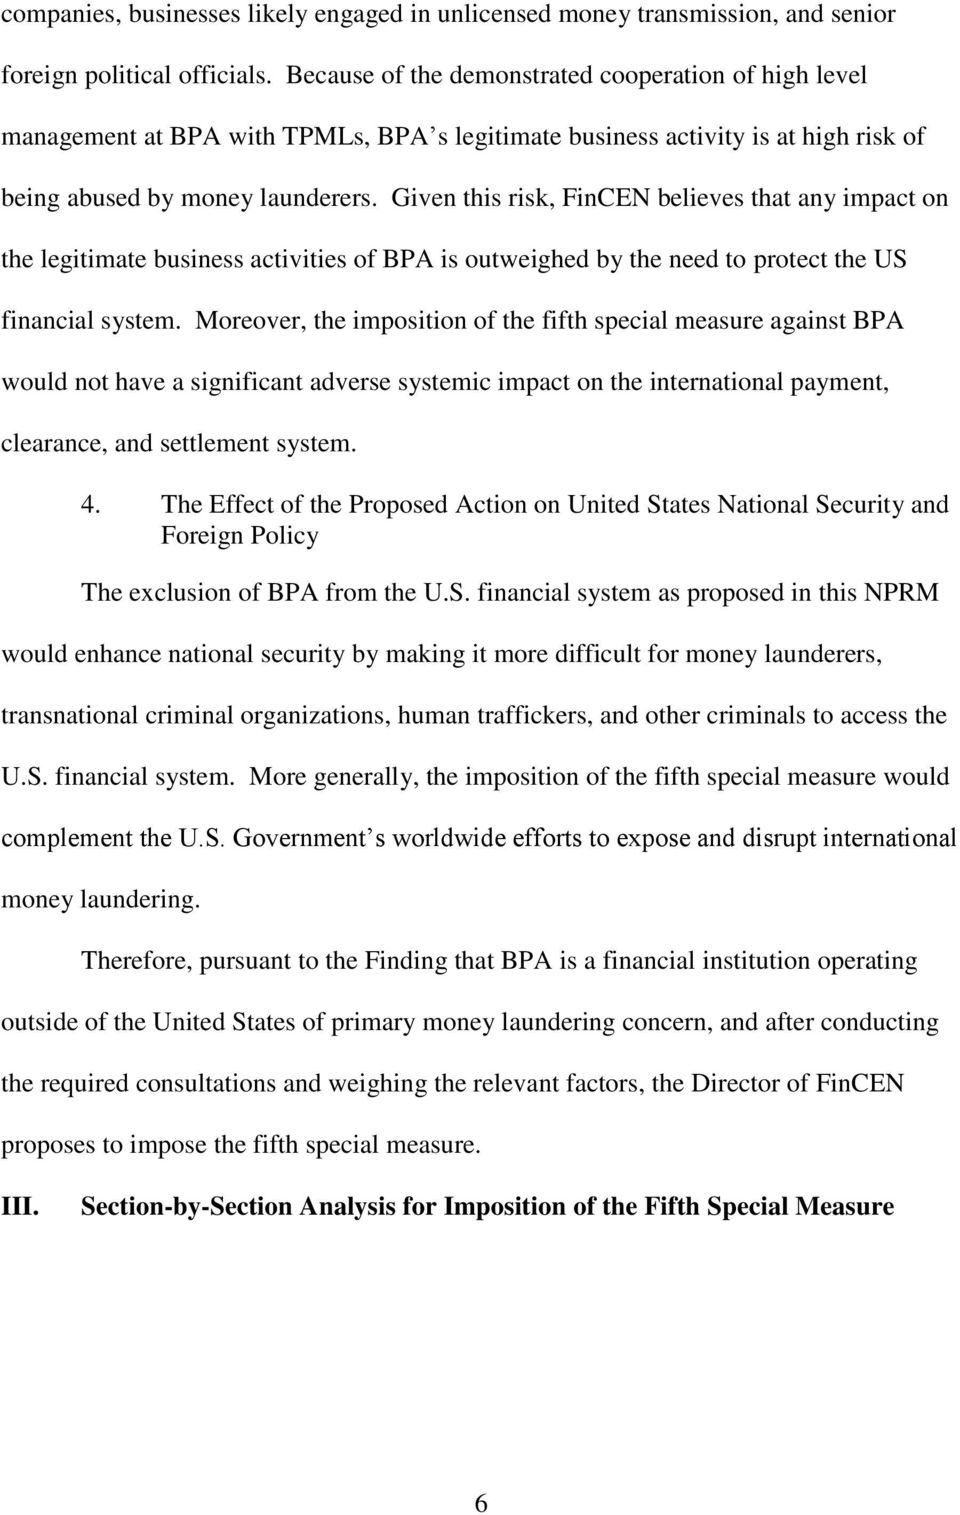 Given this risk, FinCEN believes that any impact on the legitimate business activities of BPA is outweighed by the need to protect the US financial system.